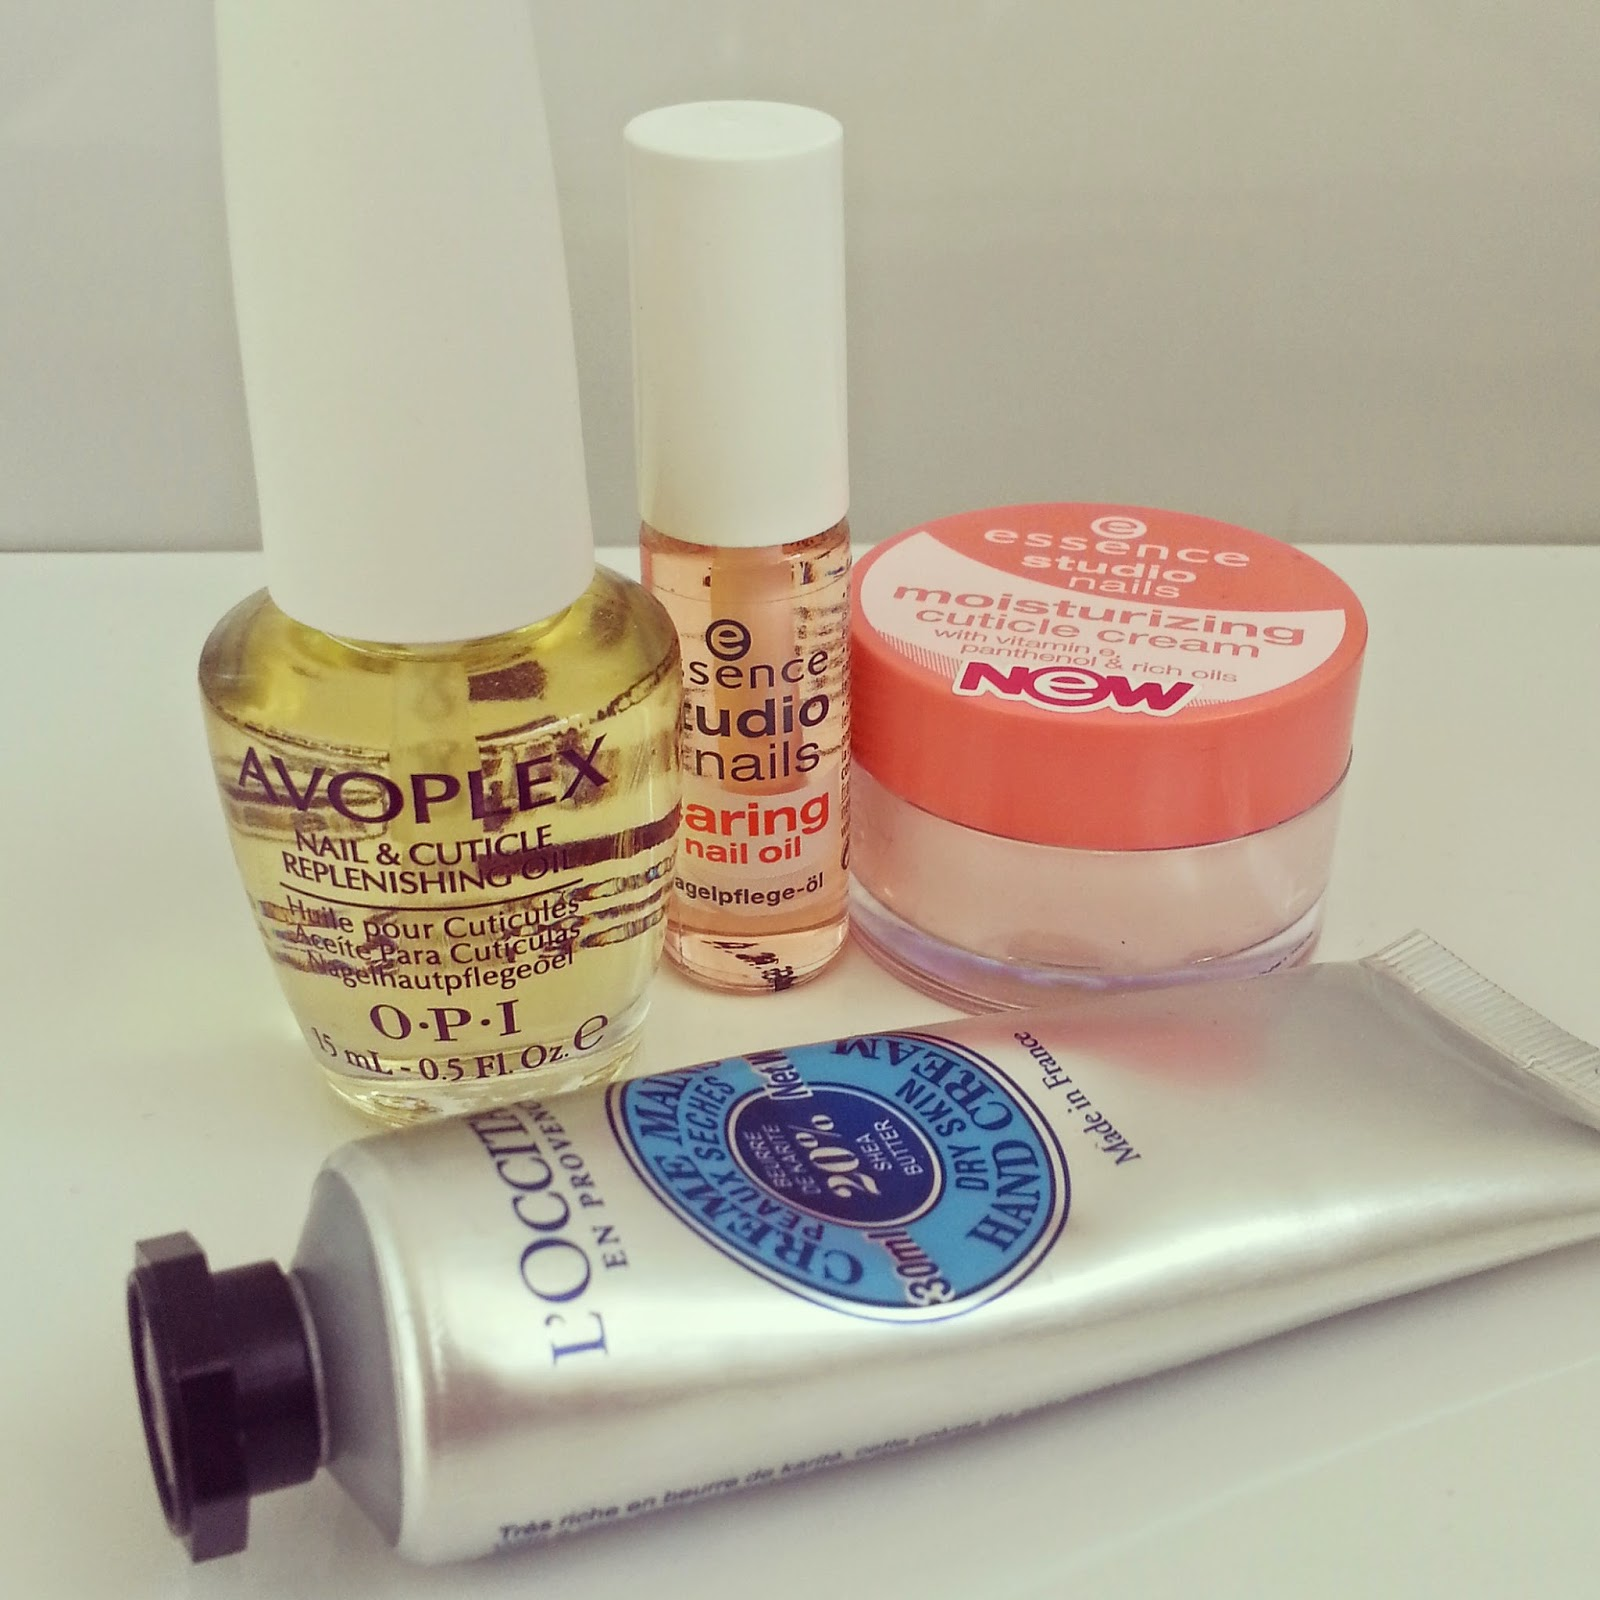 essence-cuticle-cream-loccitane-hand-cream-opi-avoplex-essence-nail-oil